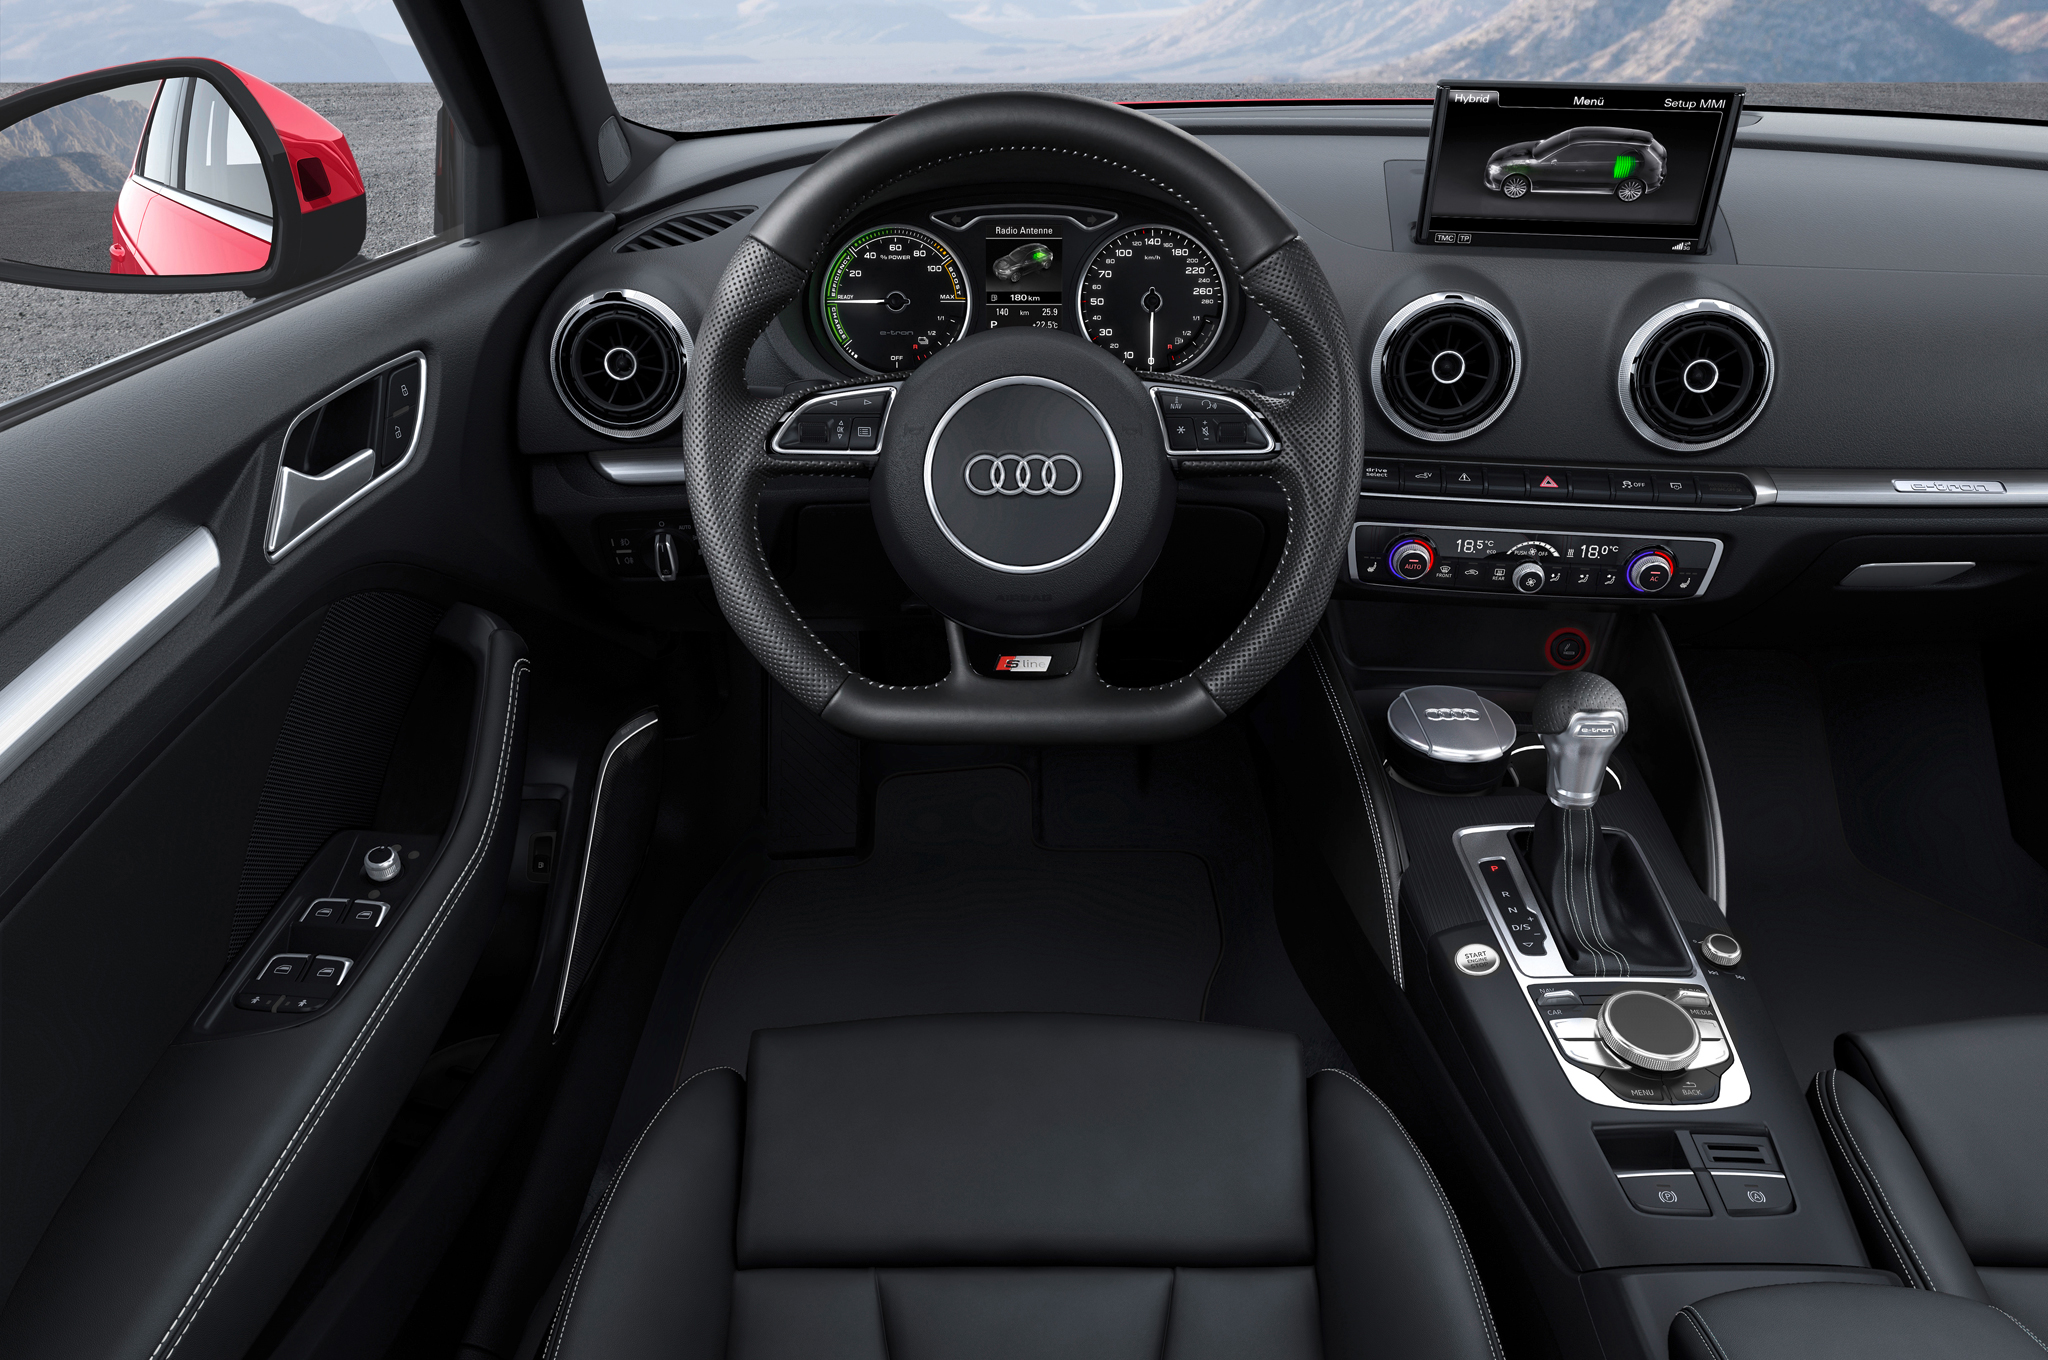 2015 audi a3 steering and panel #316 | cars performance, reviews